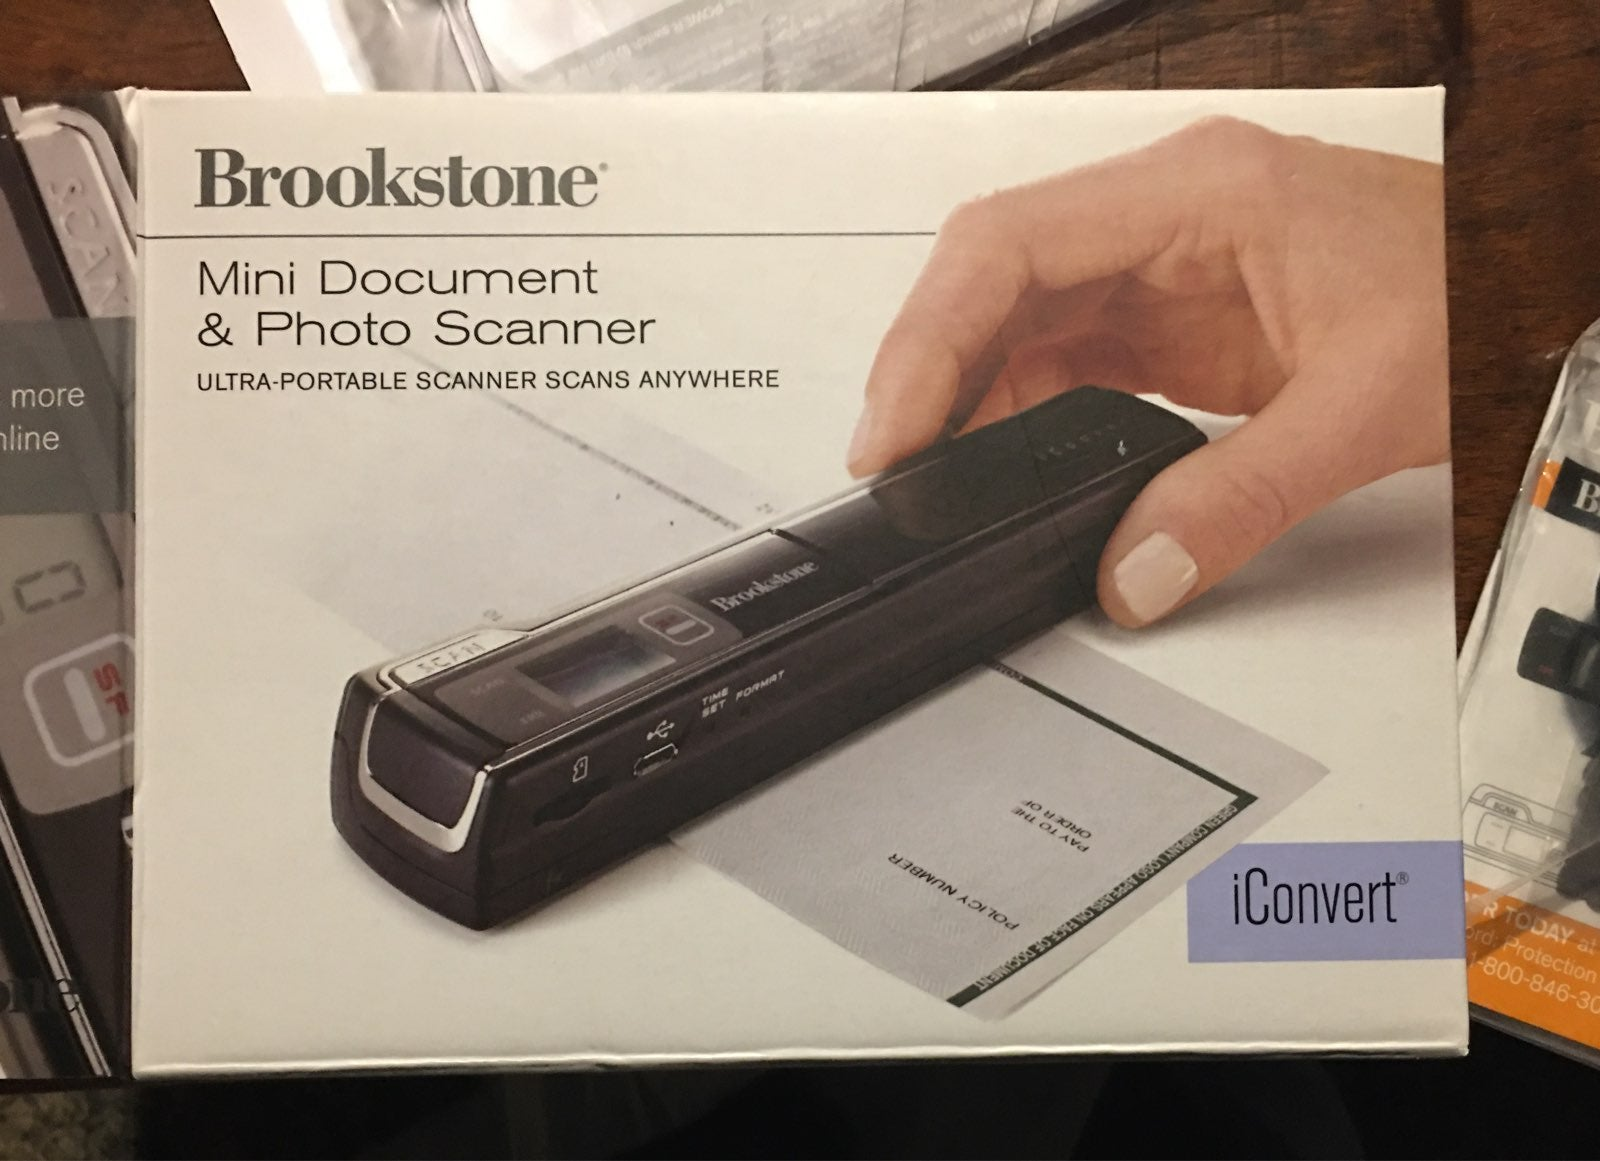 Portable Document & Photo Scanner